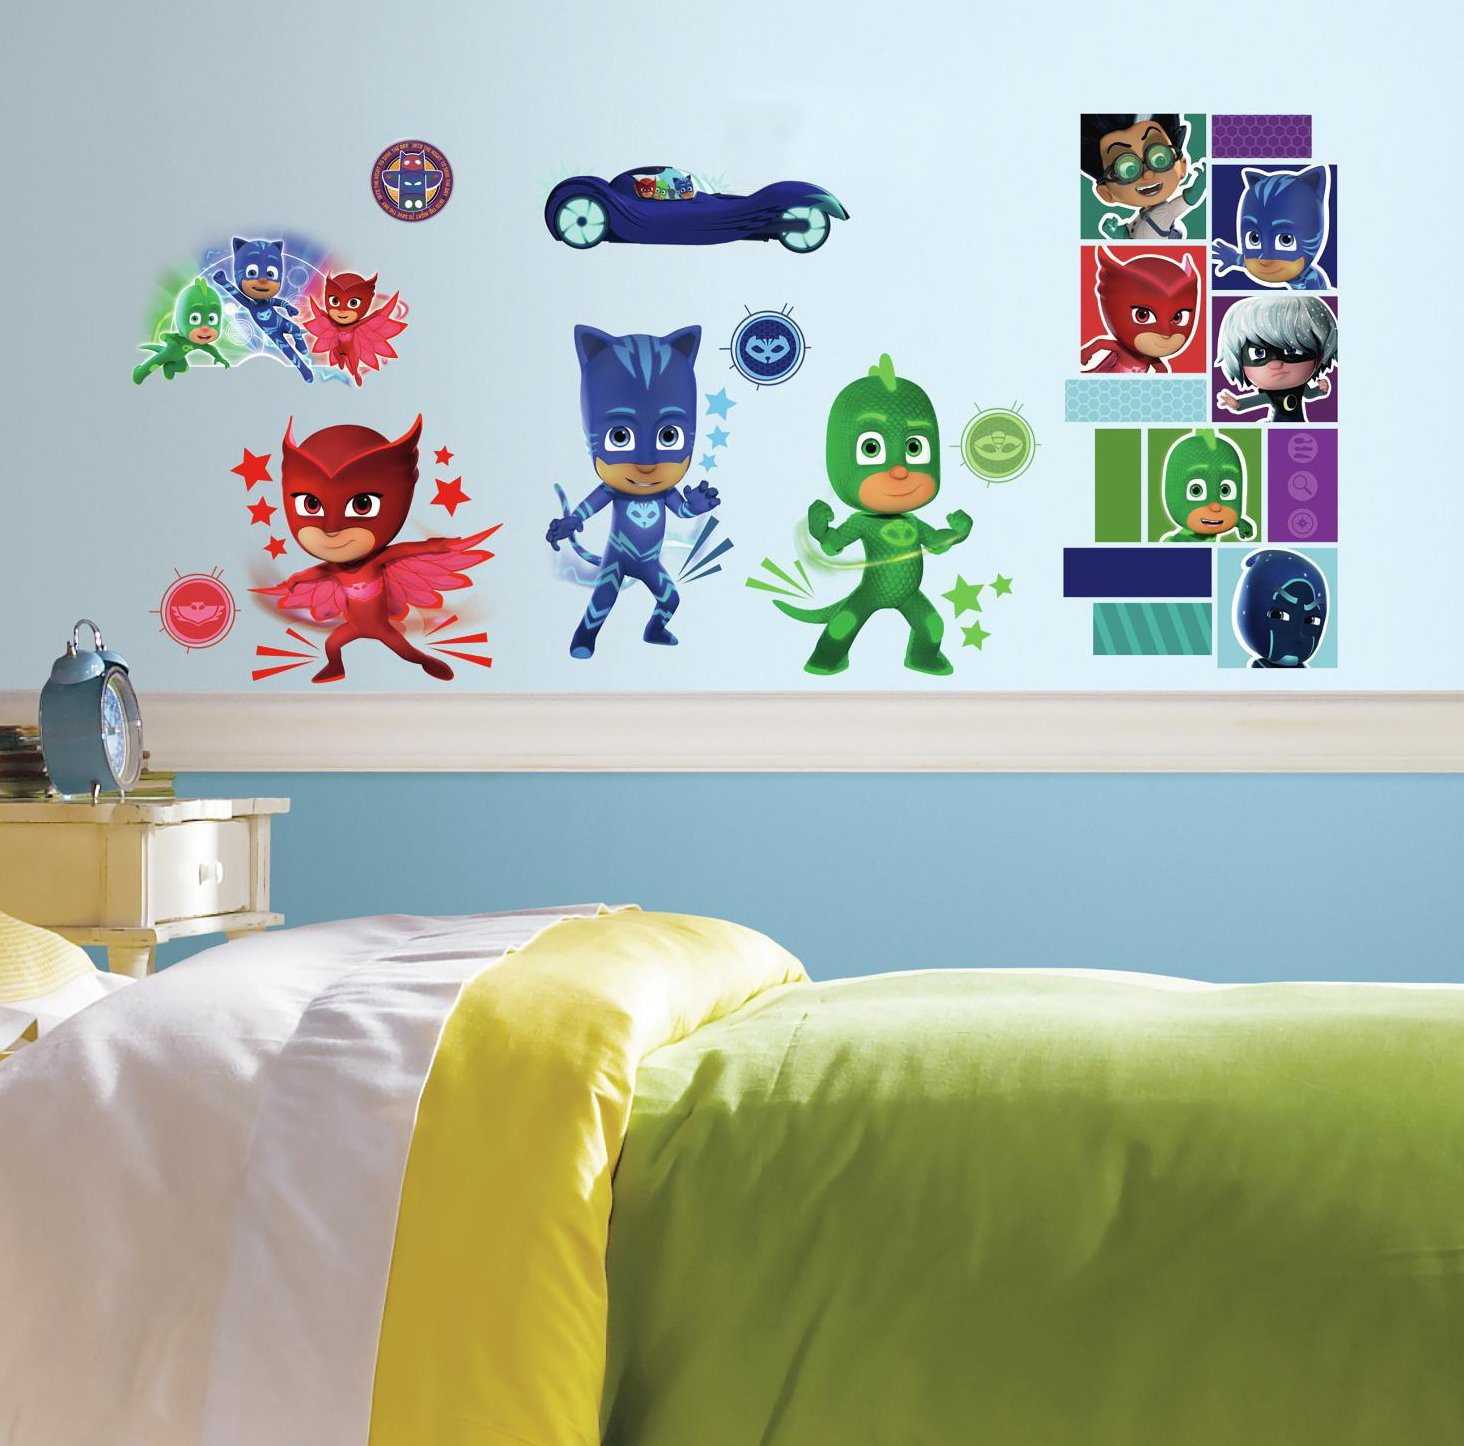 RoomMates PJ Masks Peel And Stick Wall Decals ,9 inches X 17.375 inches - RMK3586SCS by RoomMates